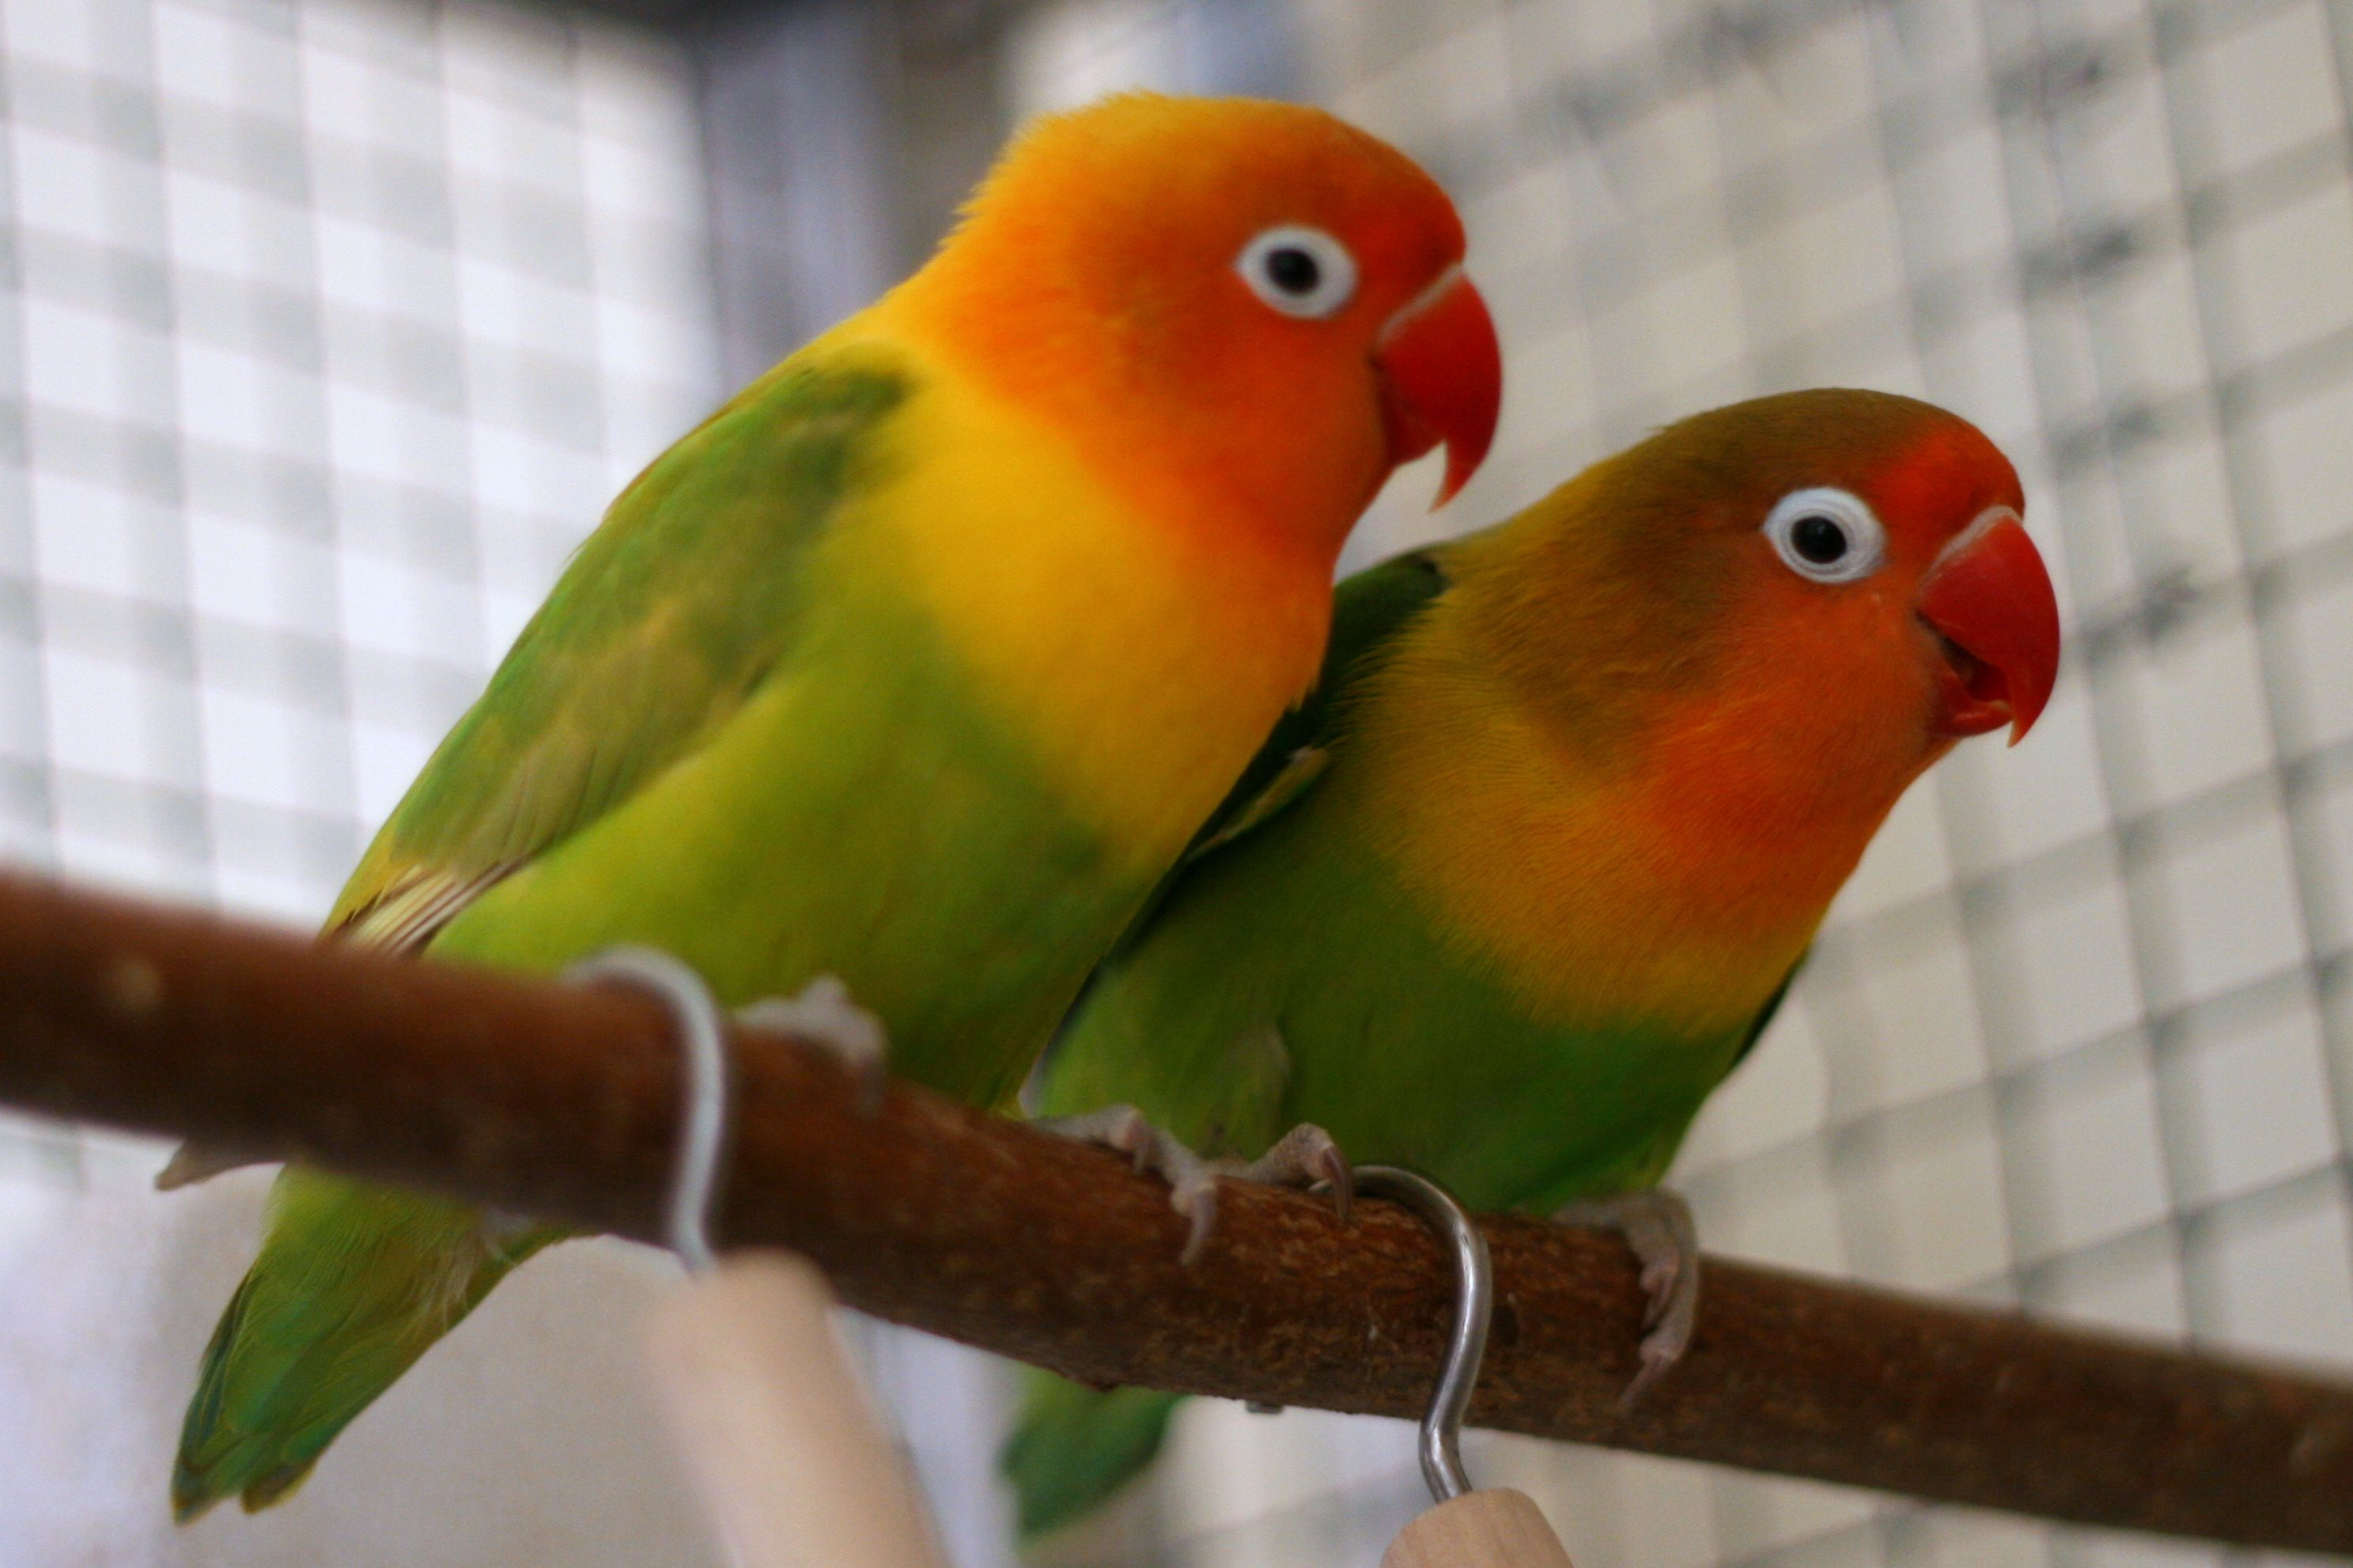 Google Image Result for http://en.academic.ru/pictures/enwiki/65/Agapornis_fischeri_couple.jpg